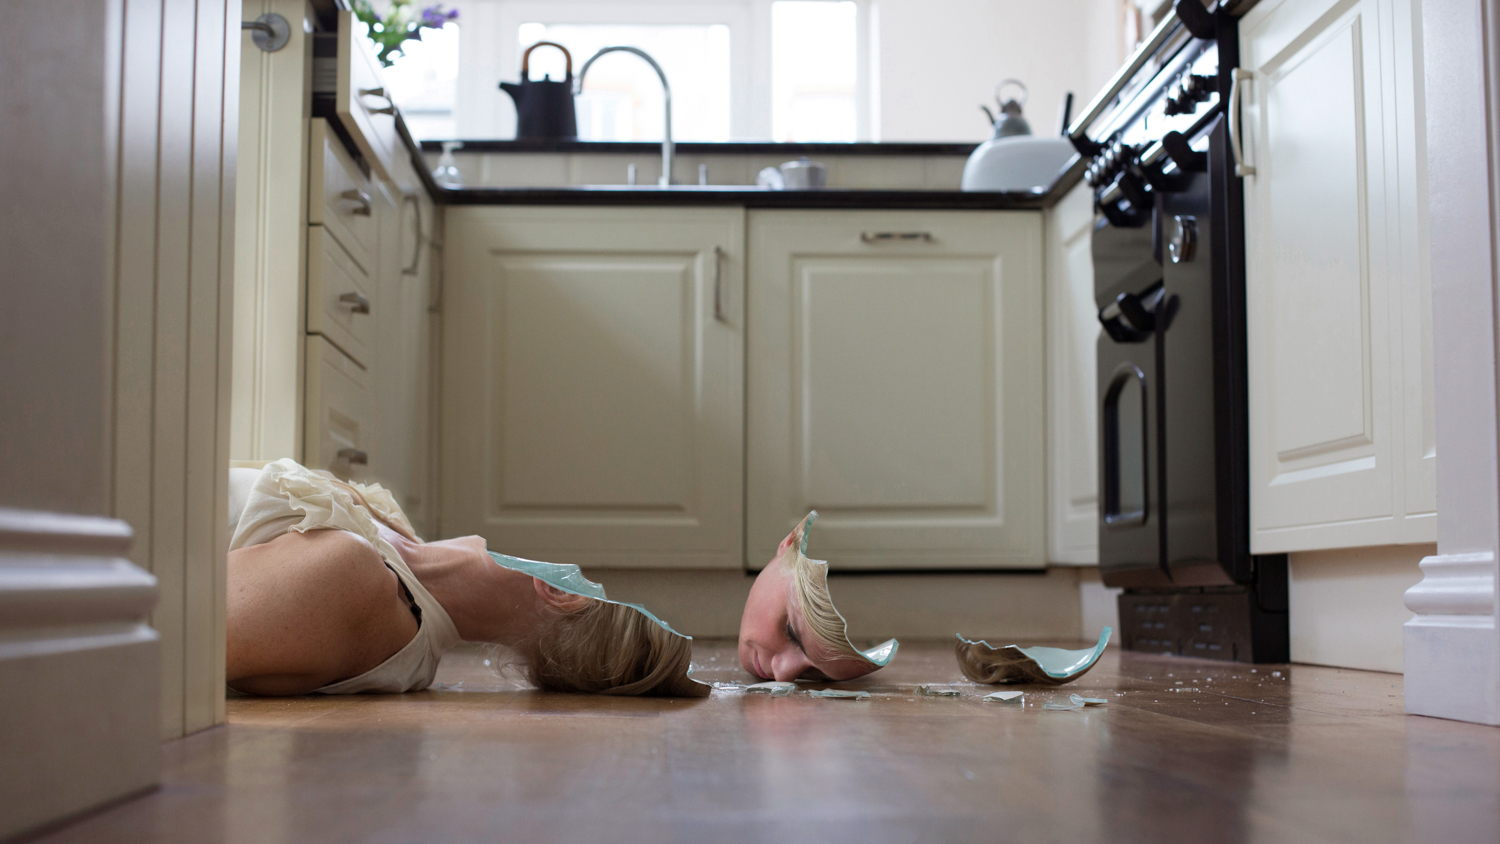 A blonde woman lies on the floor with her head cracked to pieces and scattered across her kitchen floor, as if she were made of porcelain.